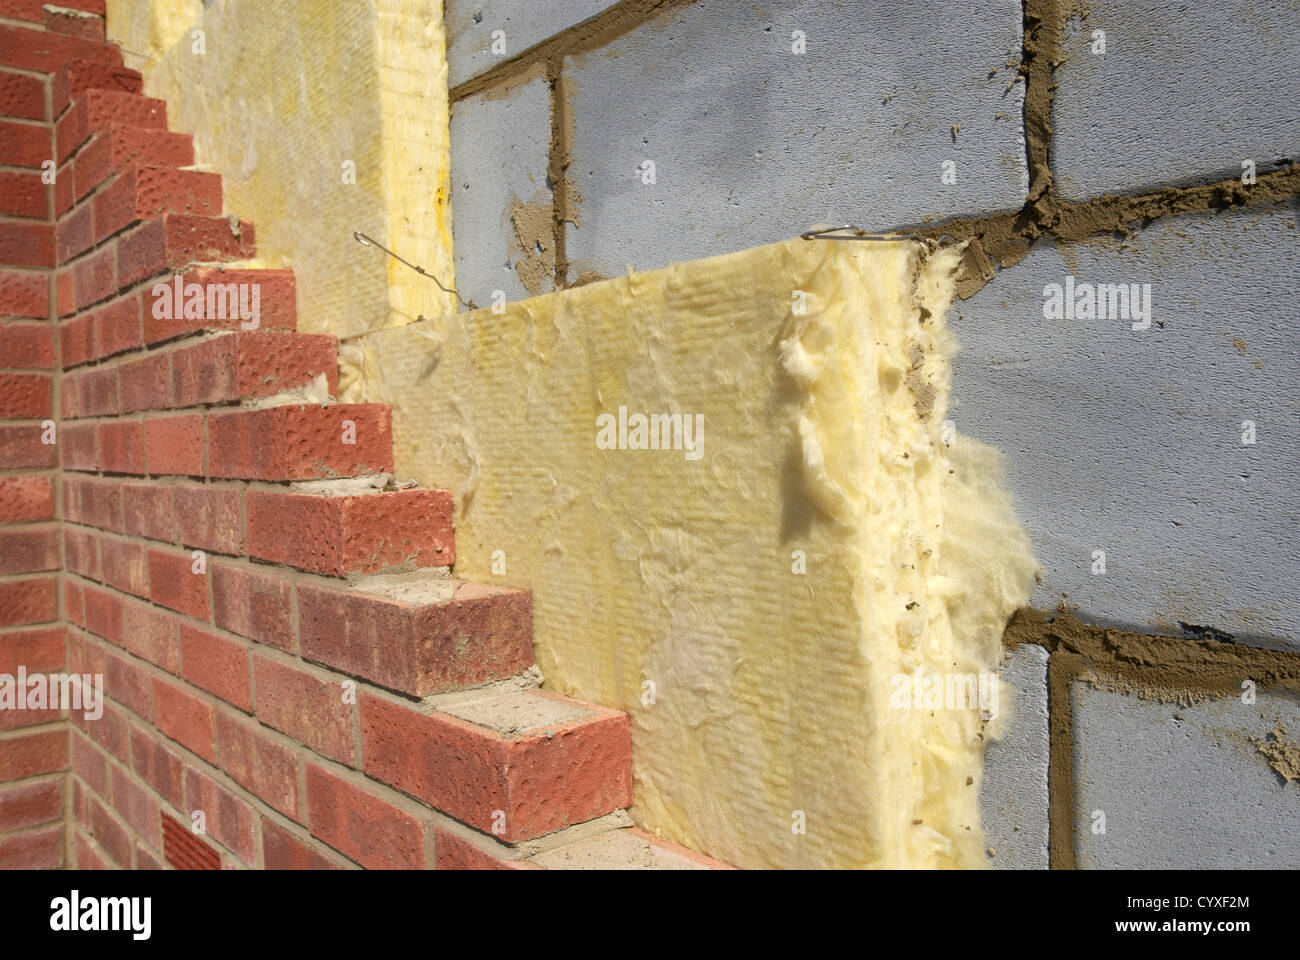 New insulated cavity wall detail Stock Photo: 51599036 - Alamy